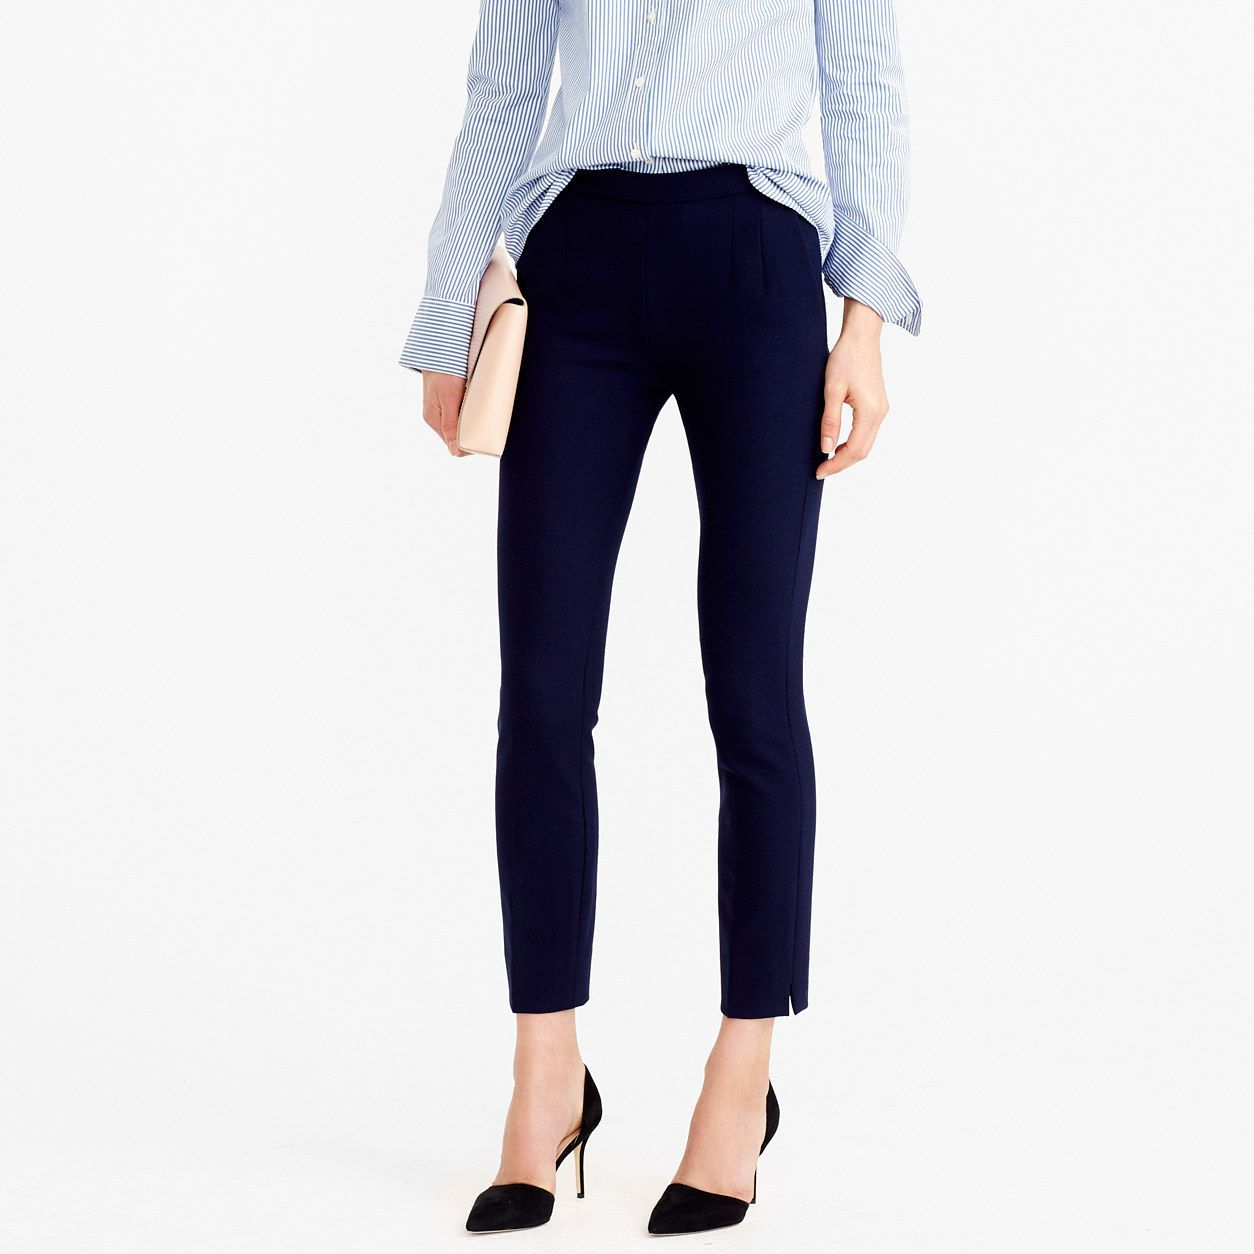 J.Crew Womens Tall Martie Pant In Two-Way Stretch Wool (Size 12